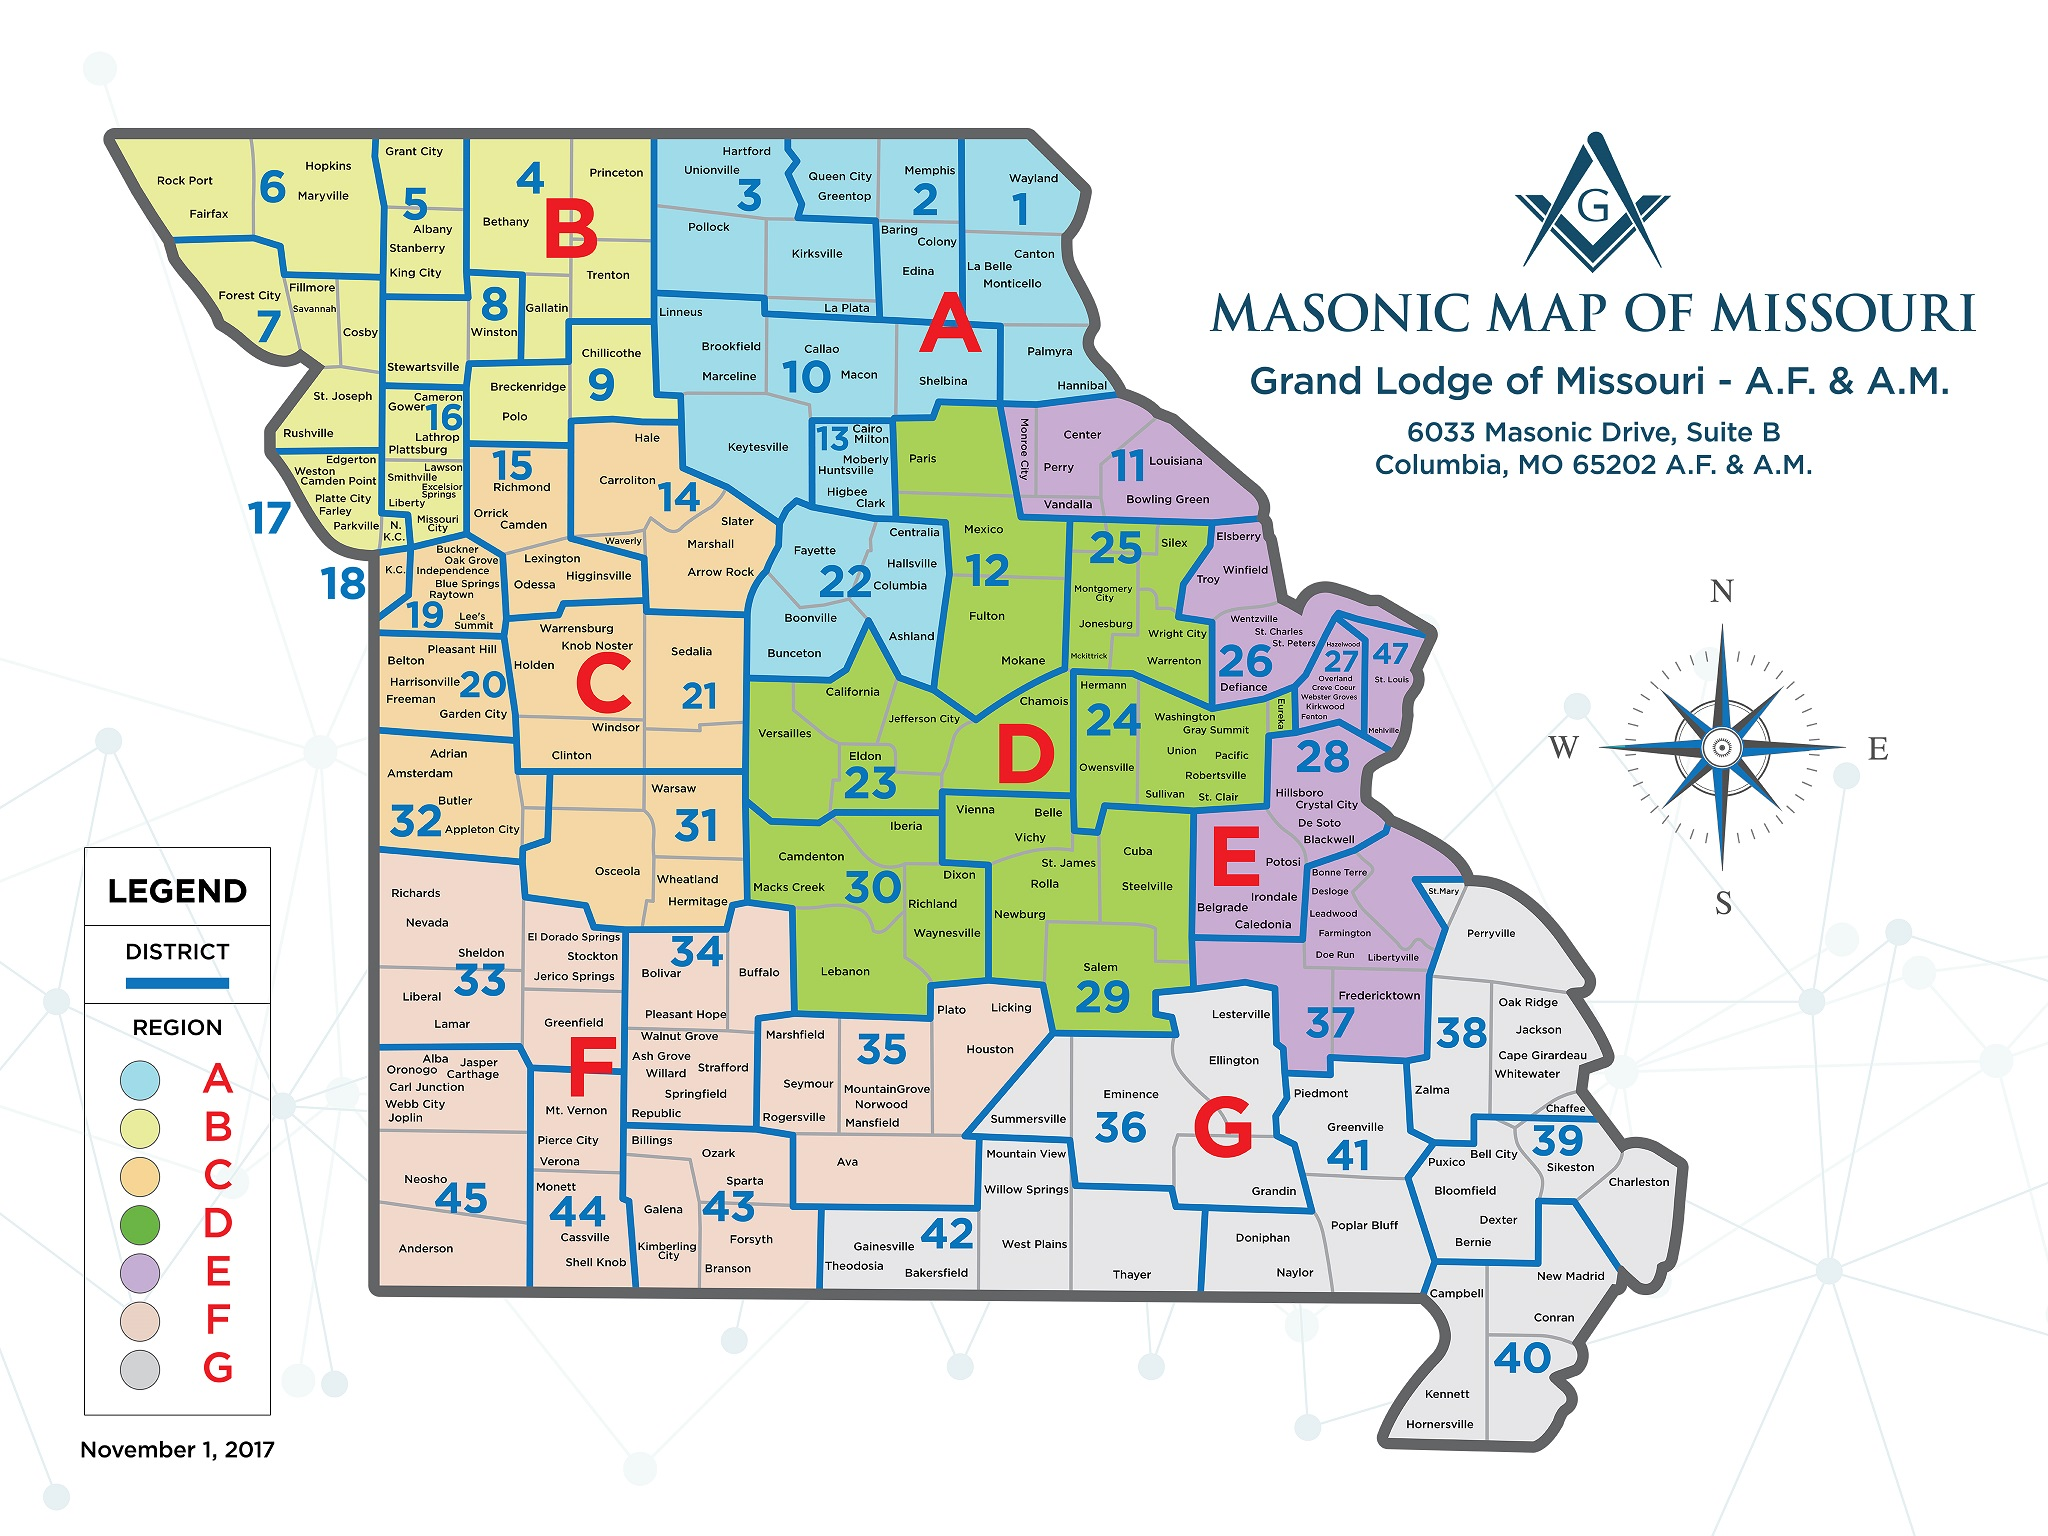 District Map The Grand Lodge of Missouri